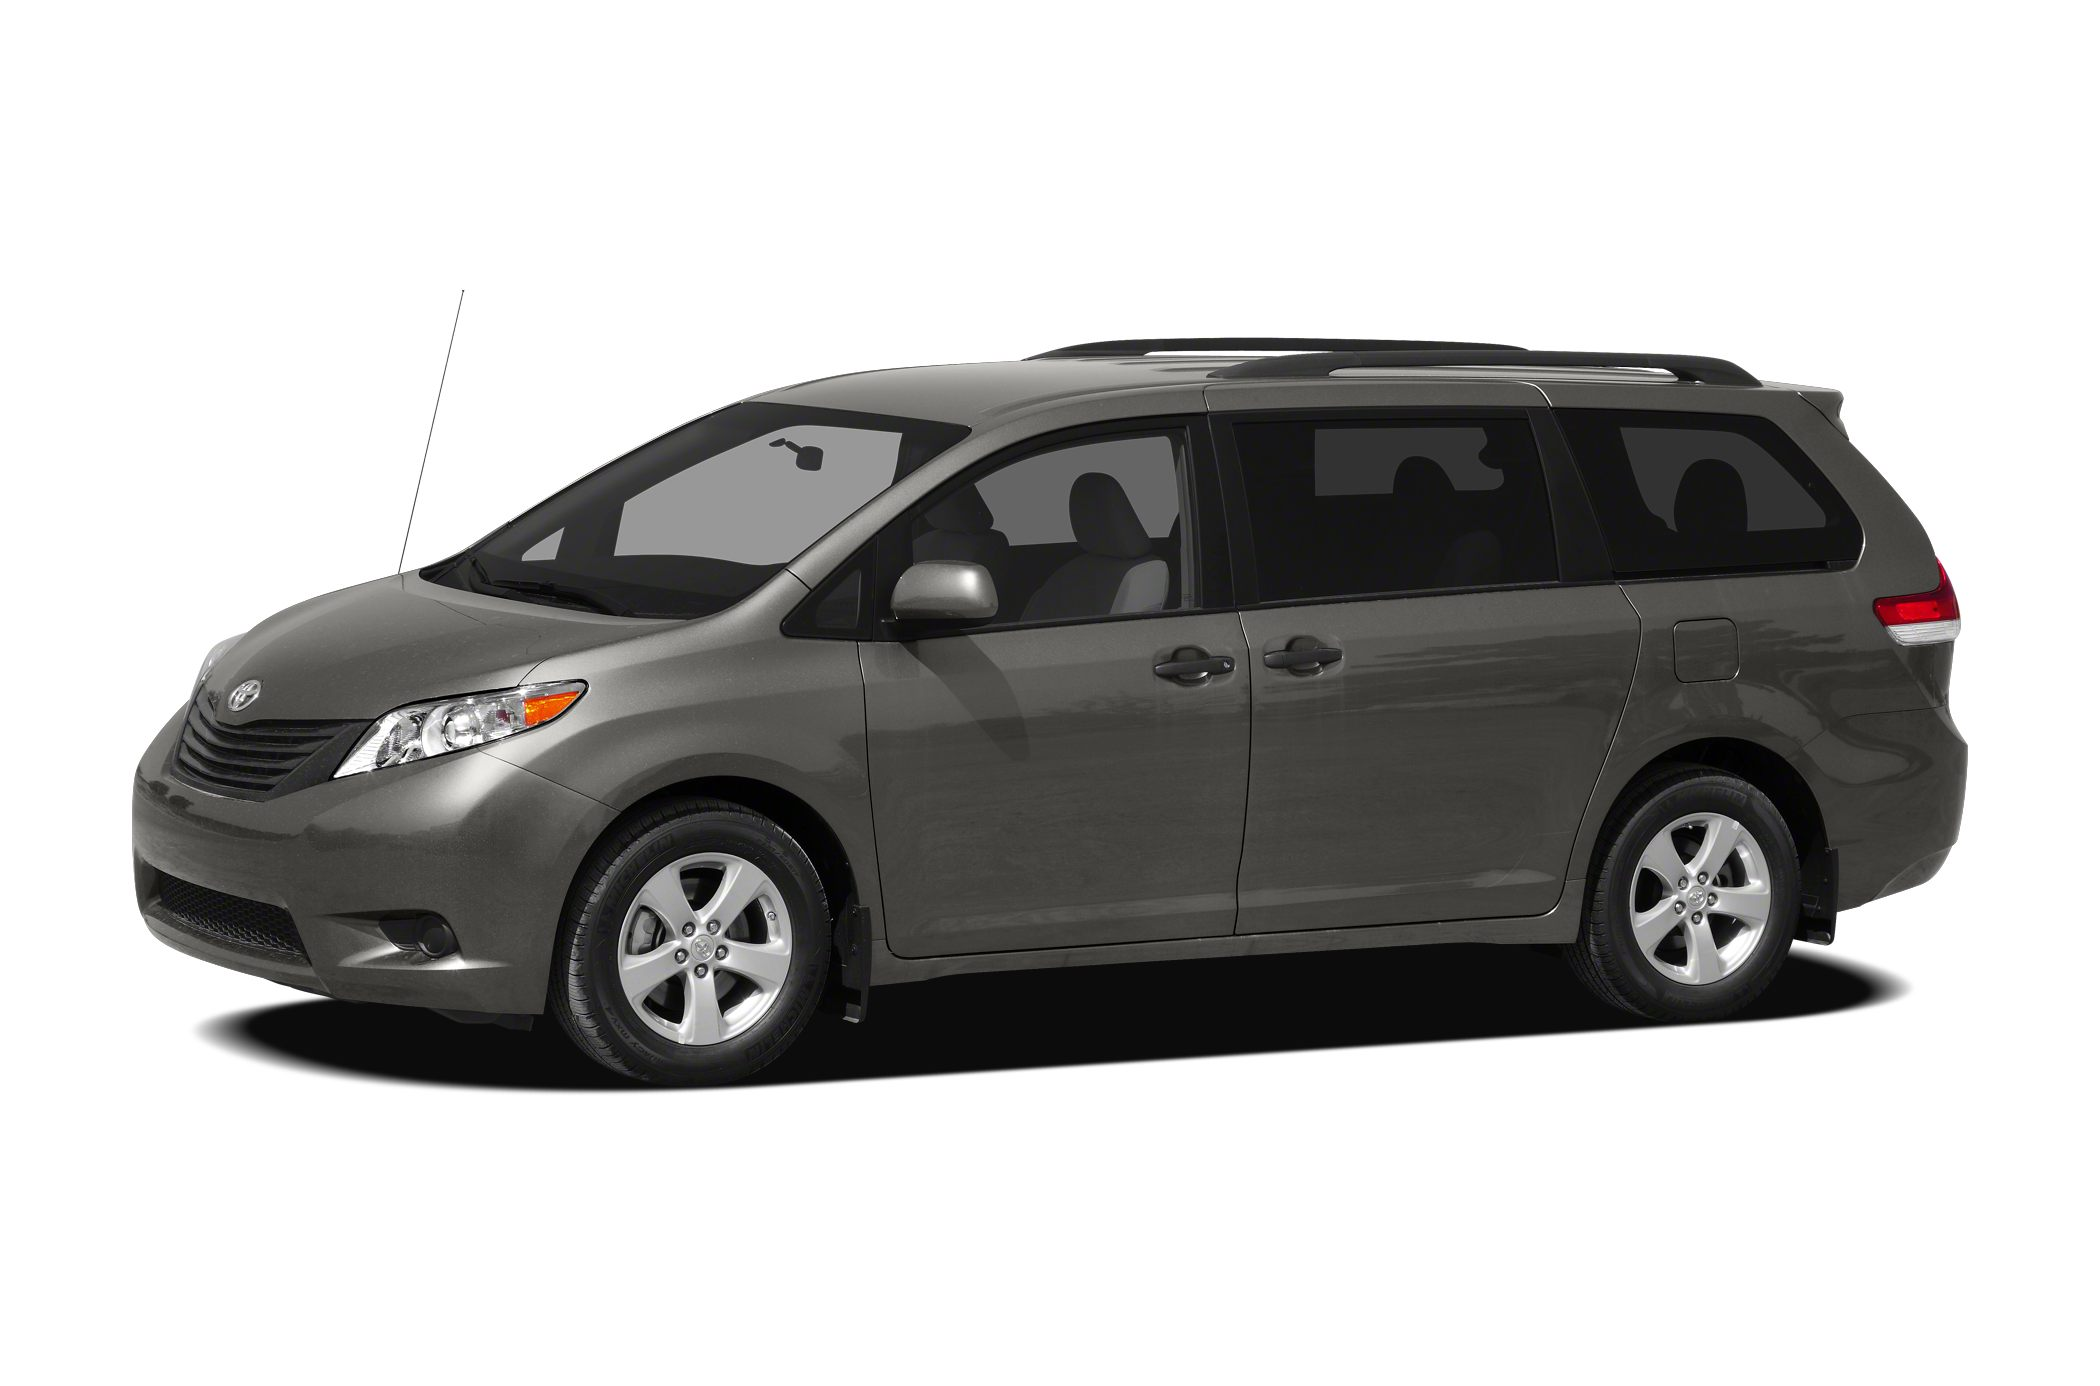 2011 Toyota Sienna XLE PRICE DROP FROM 23477 PRICED TO MOVE 600 below Kelley Blue Book EPA 2